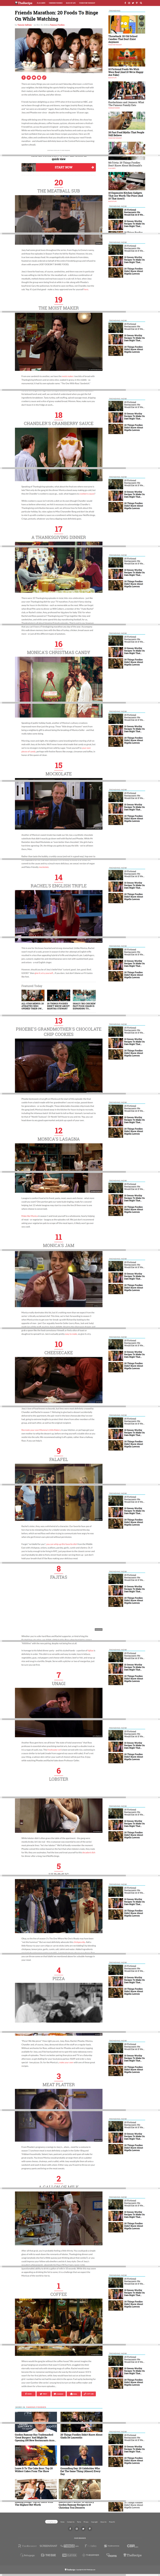 Friends Marathon  20 Foods To Binge On While Watching   TheRecipe.png